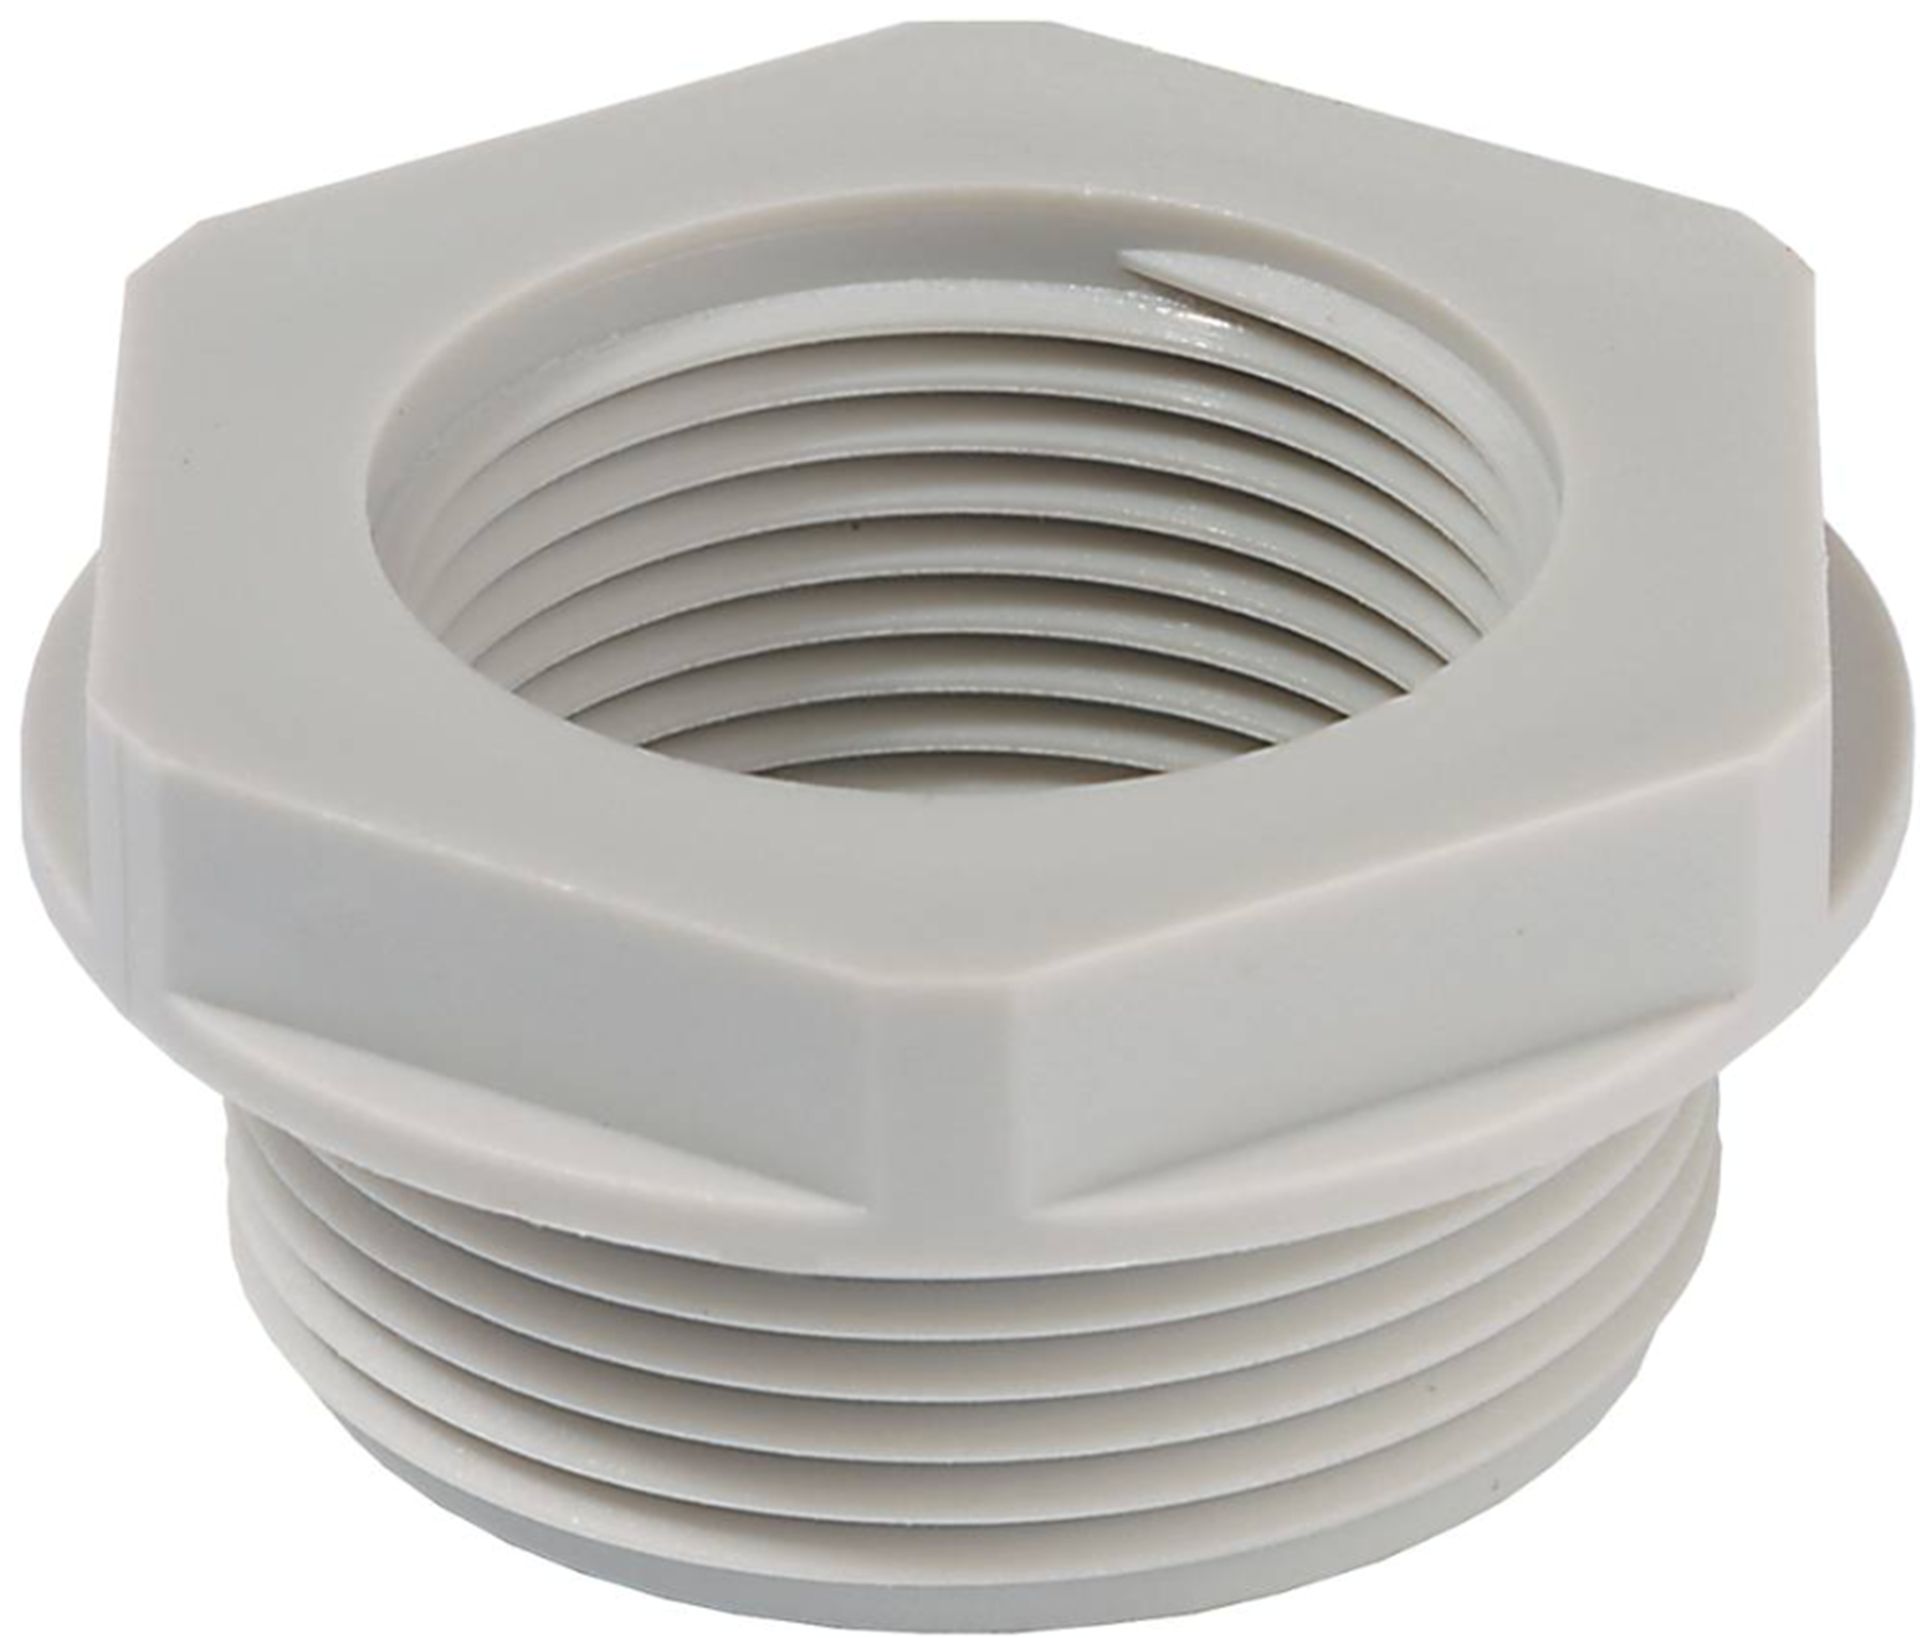 Wiska KRM 50/40 Reduction Adapter LG 10063591